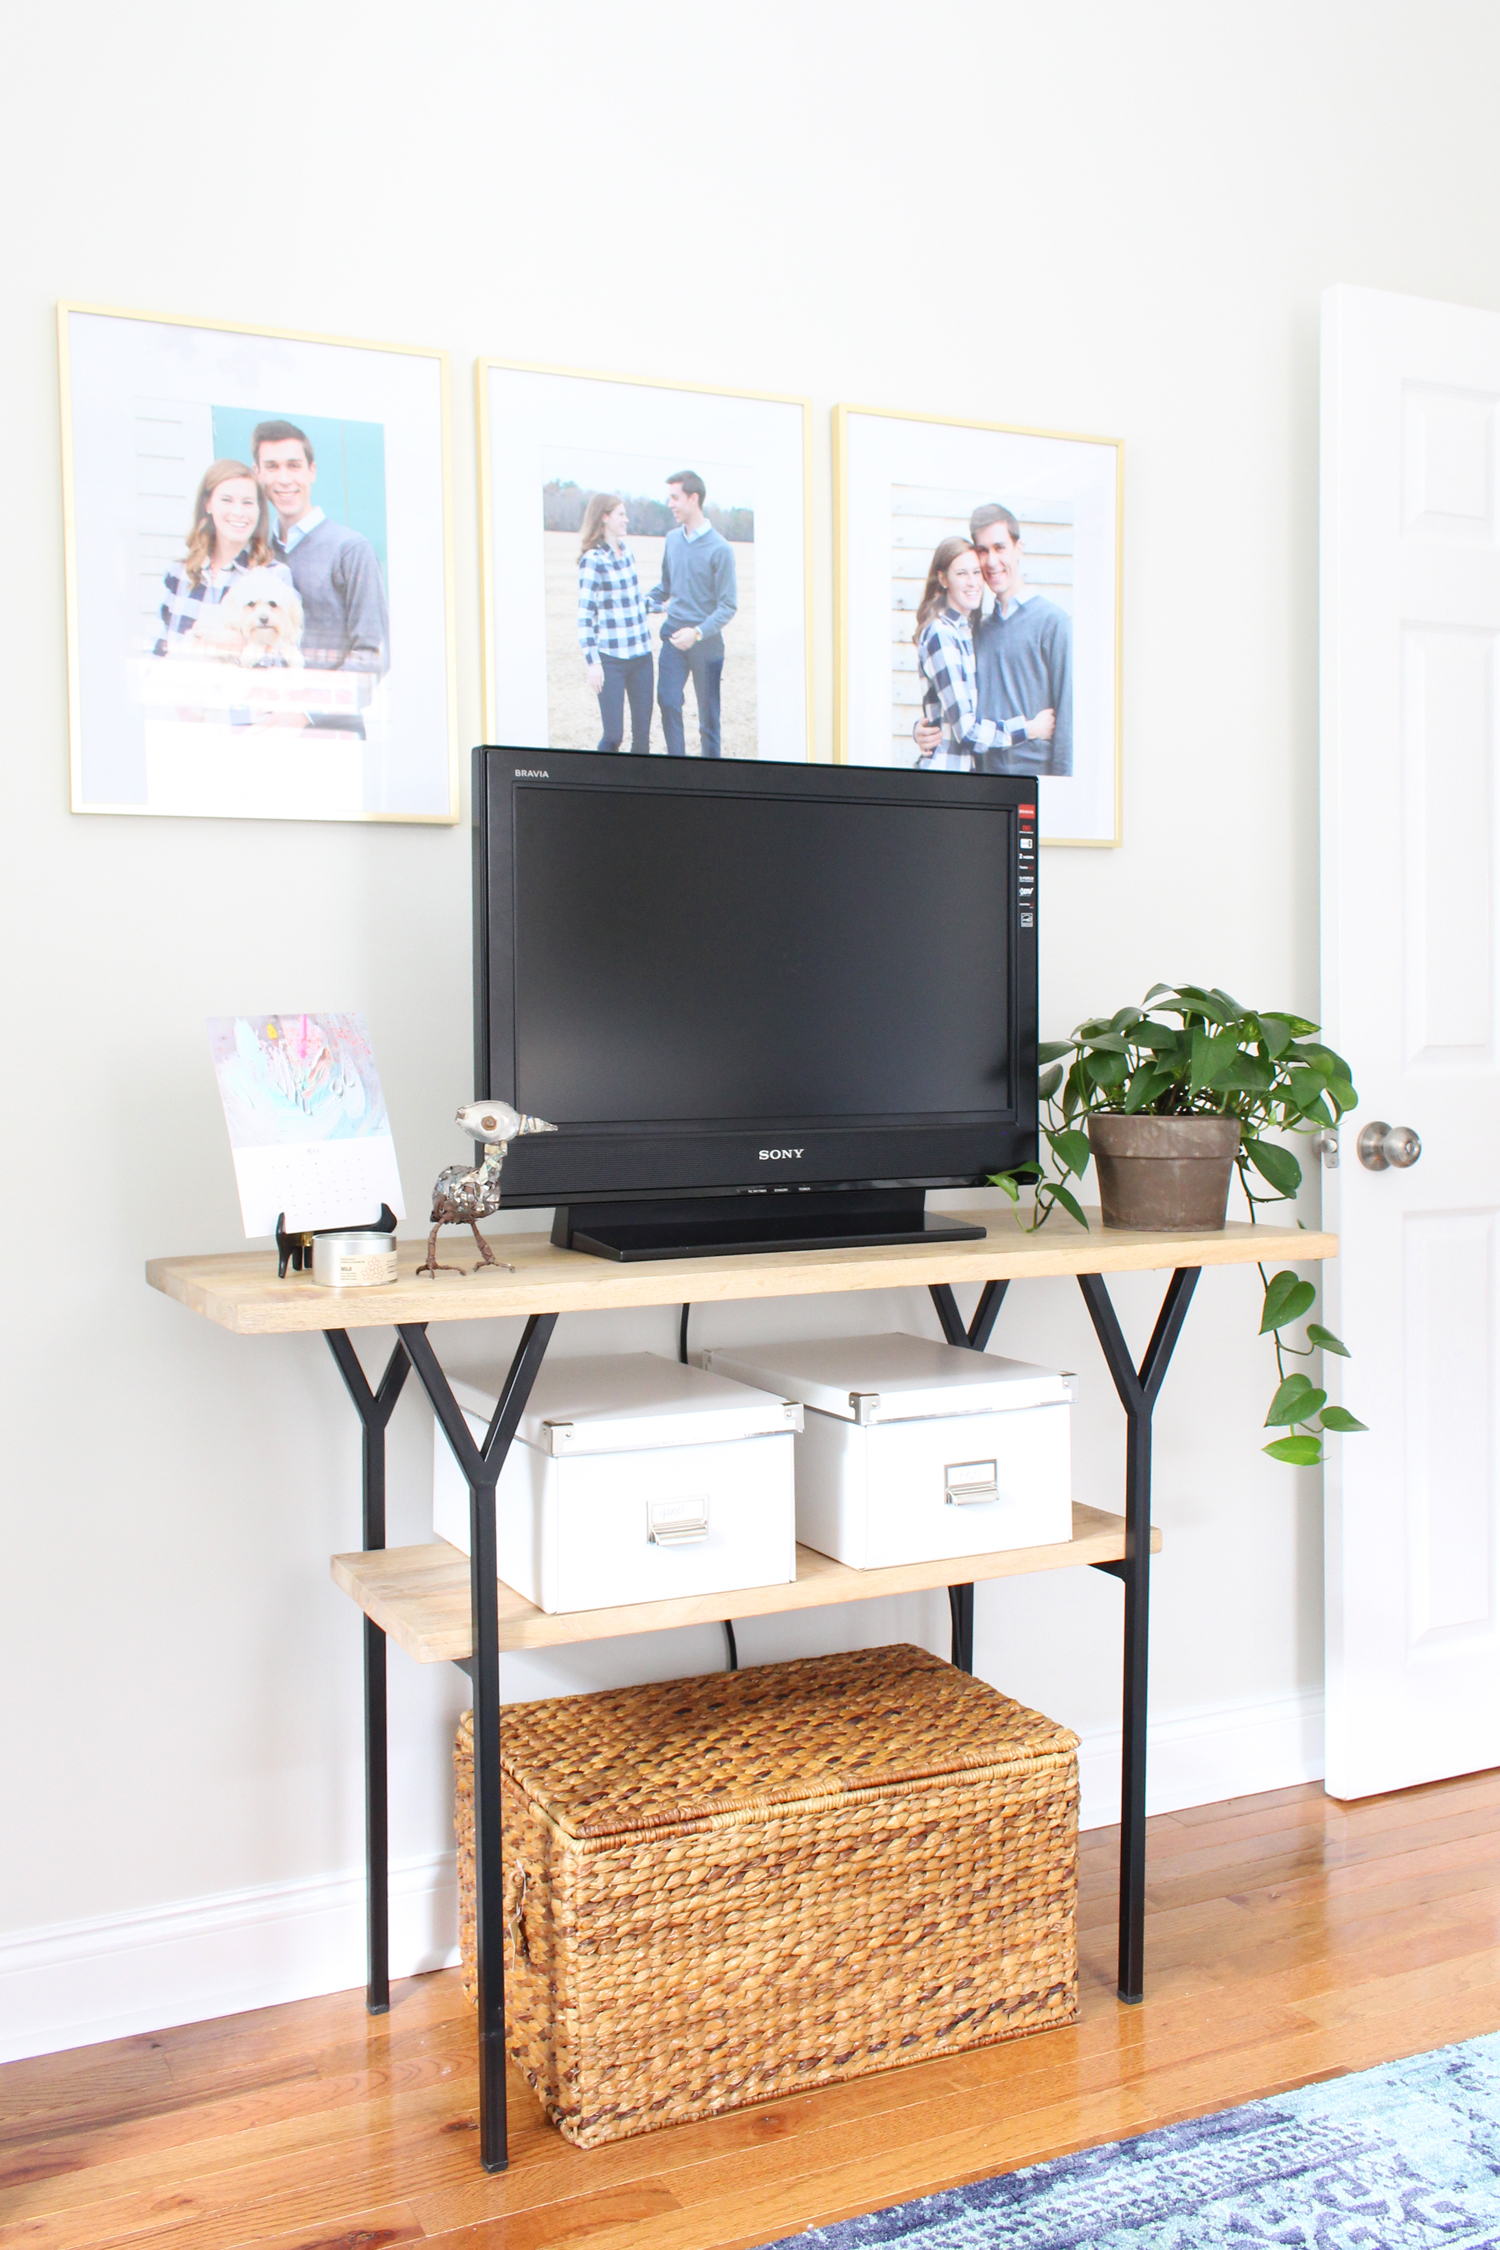 Using a console table as a TV stand in a home office.